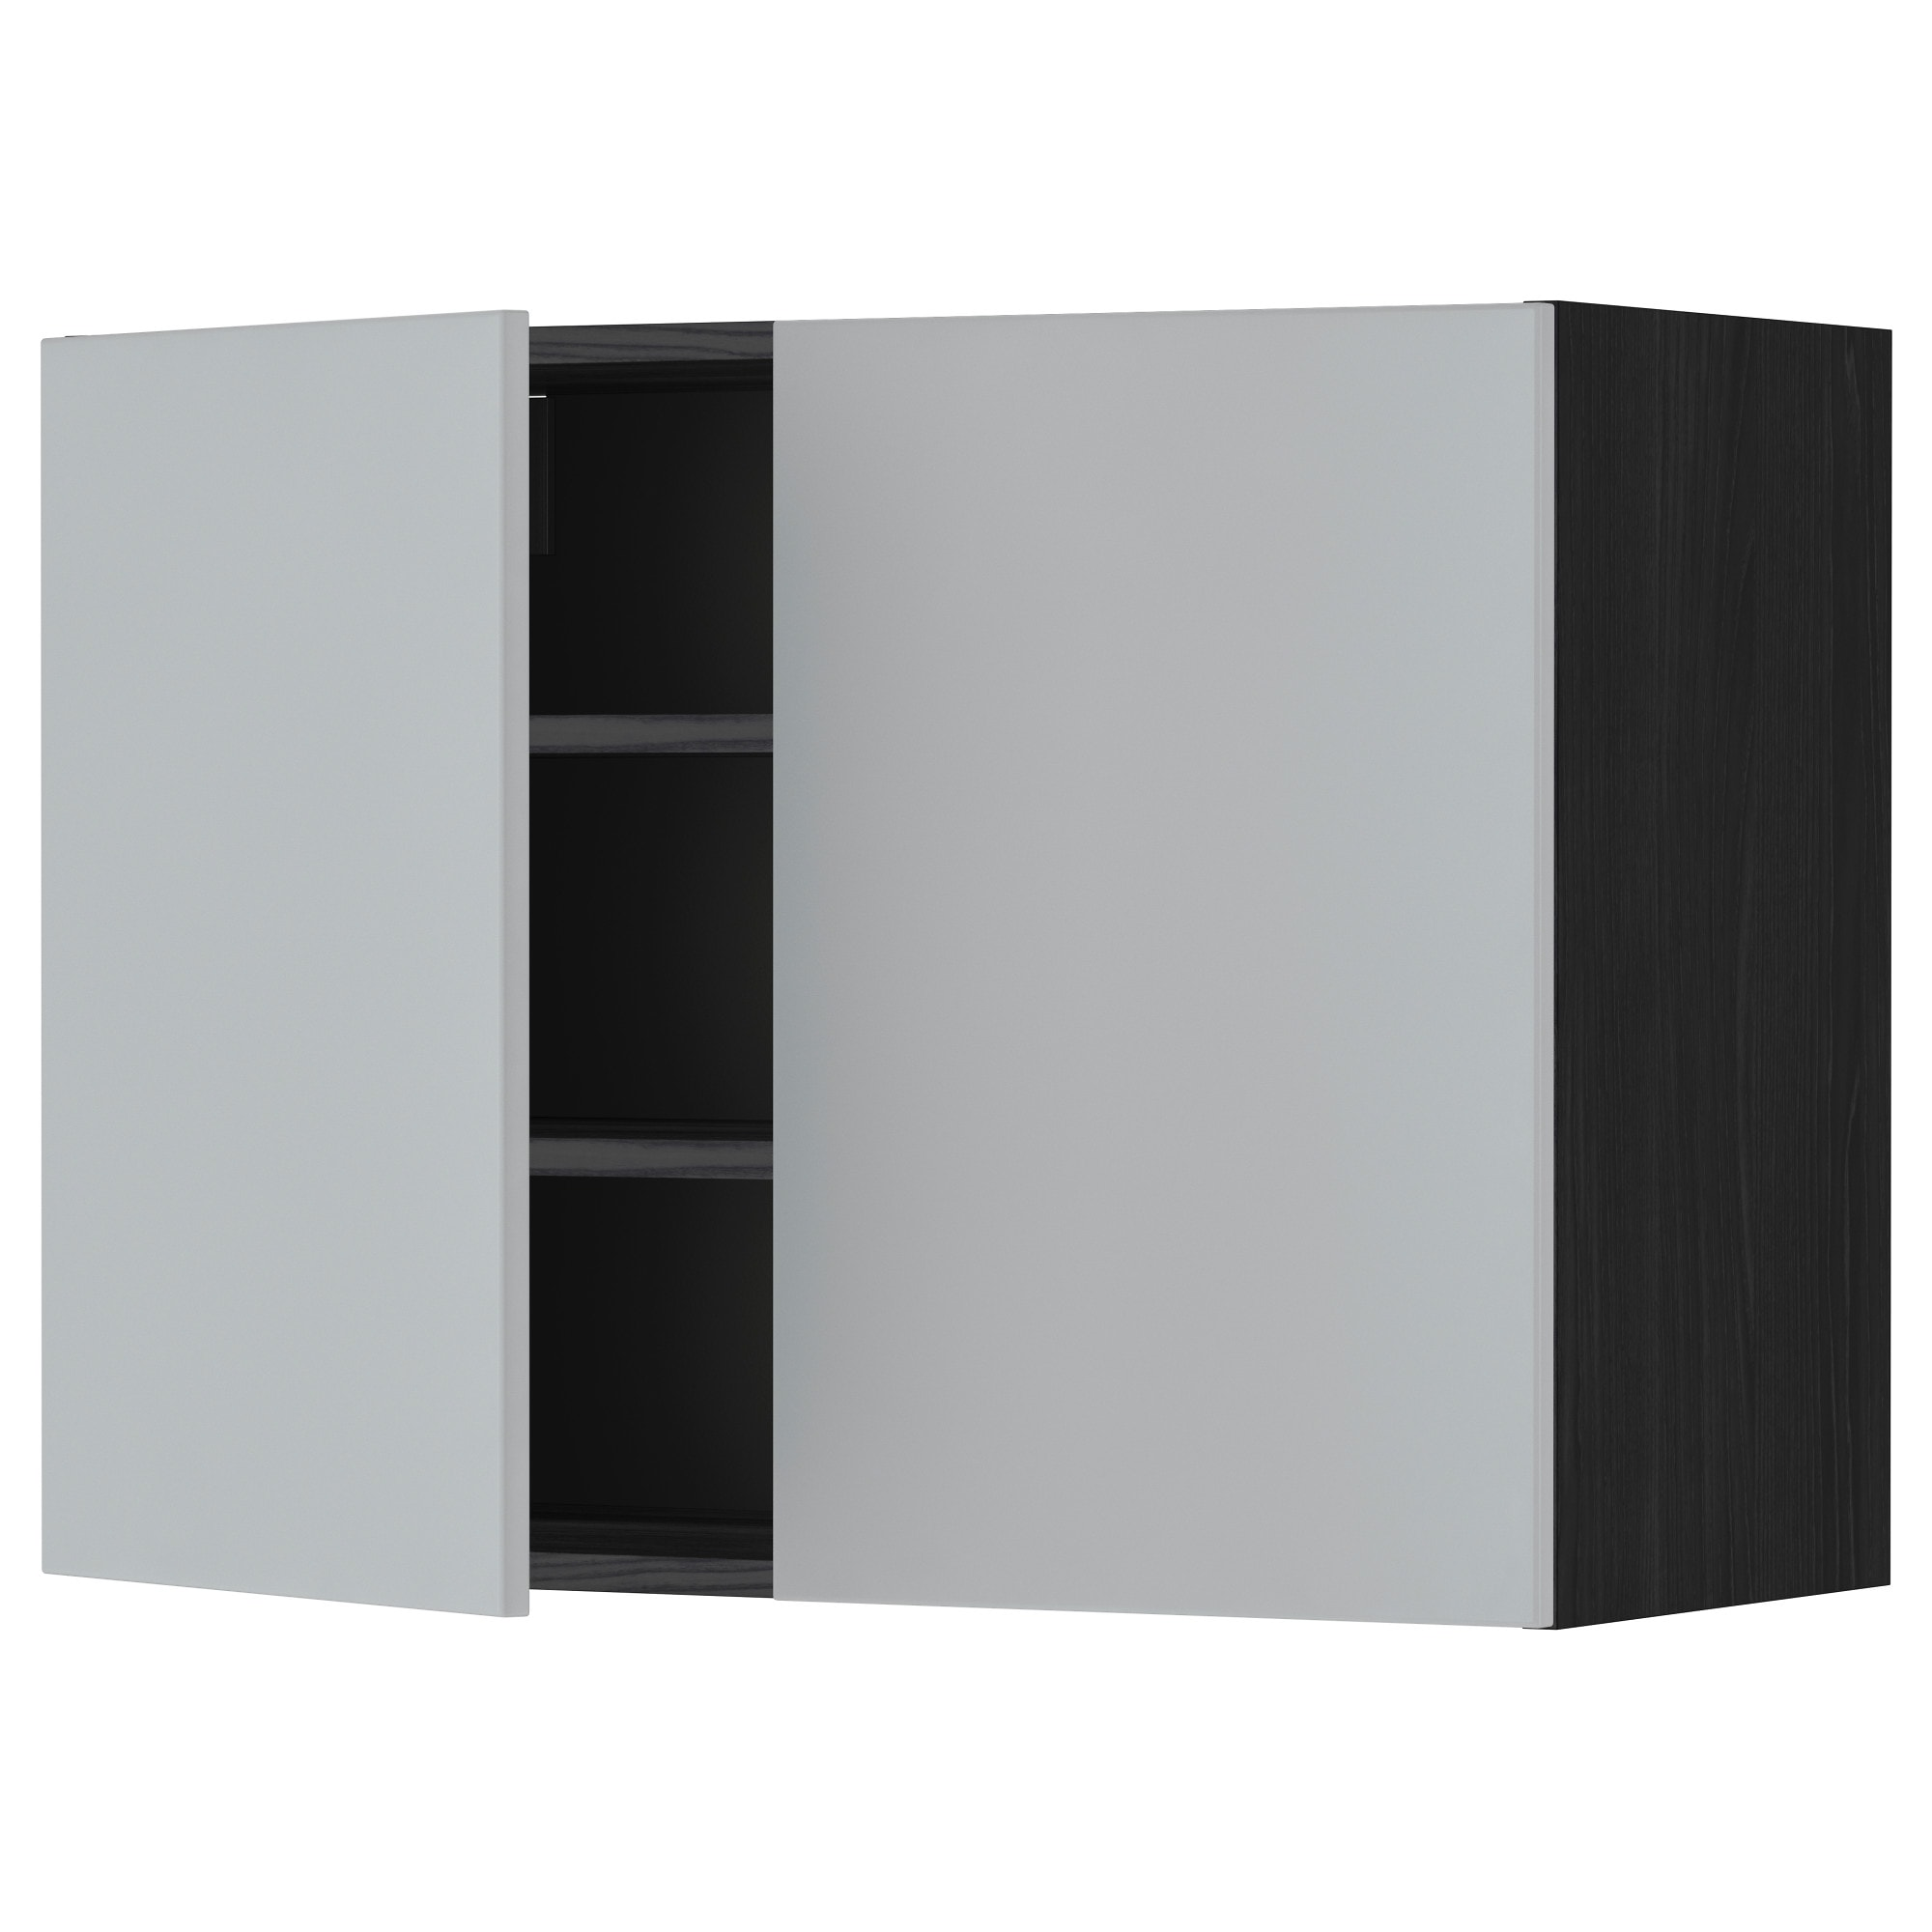 ezoll badmbel best badmbel kaufen bauhaus im ganzen. Black Bedroom Furniture Sets. Home Design Ideas